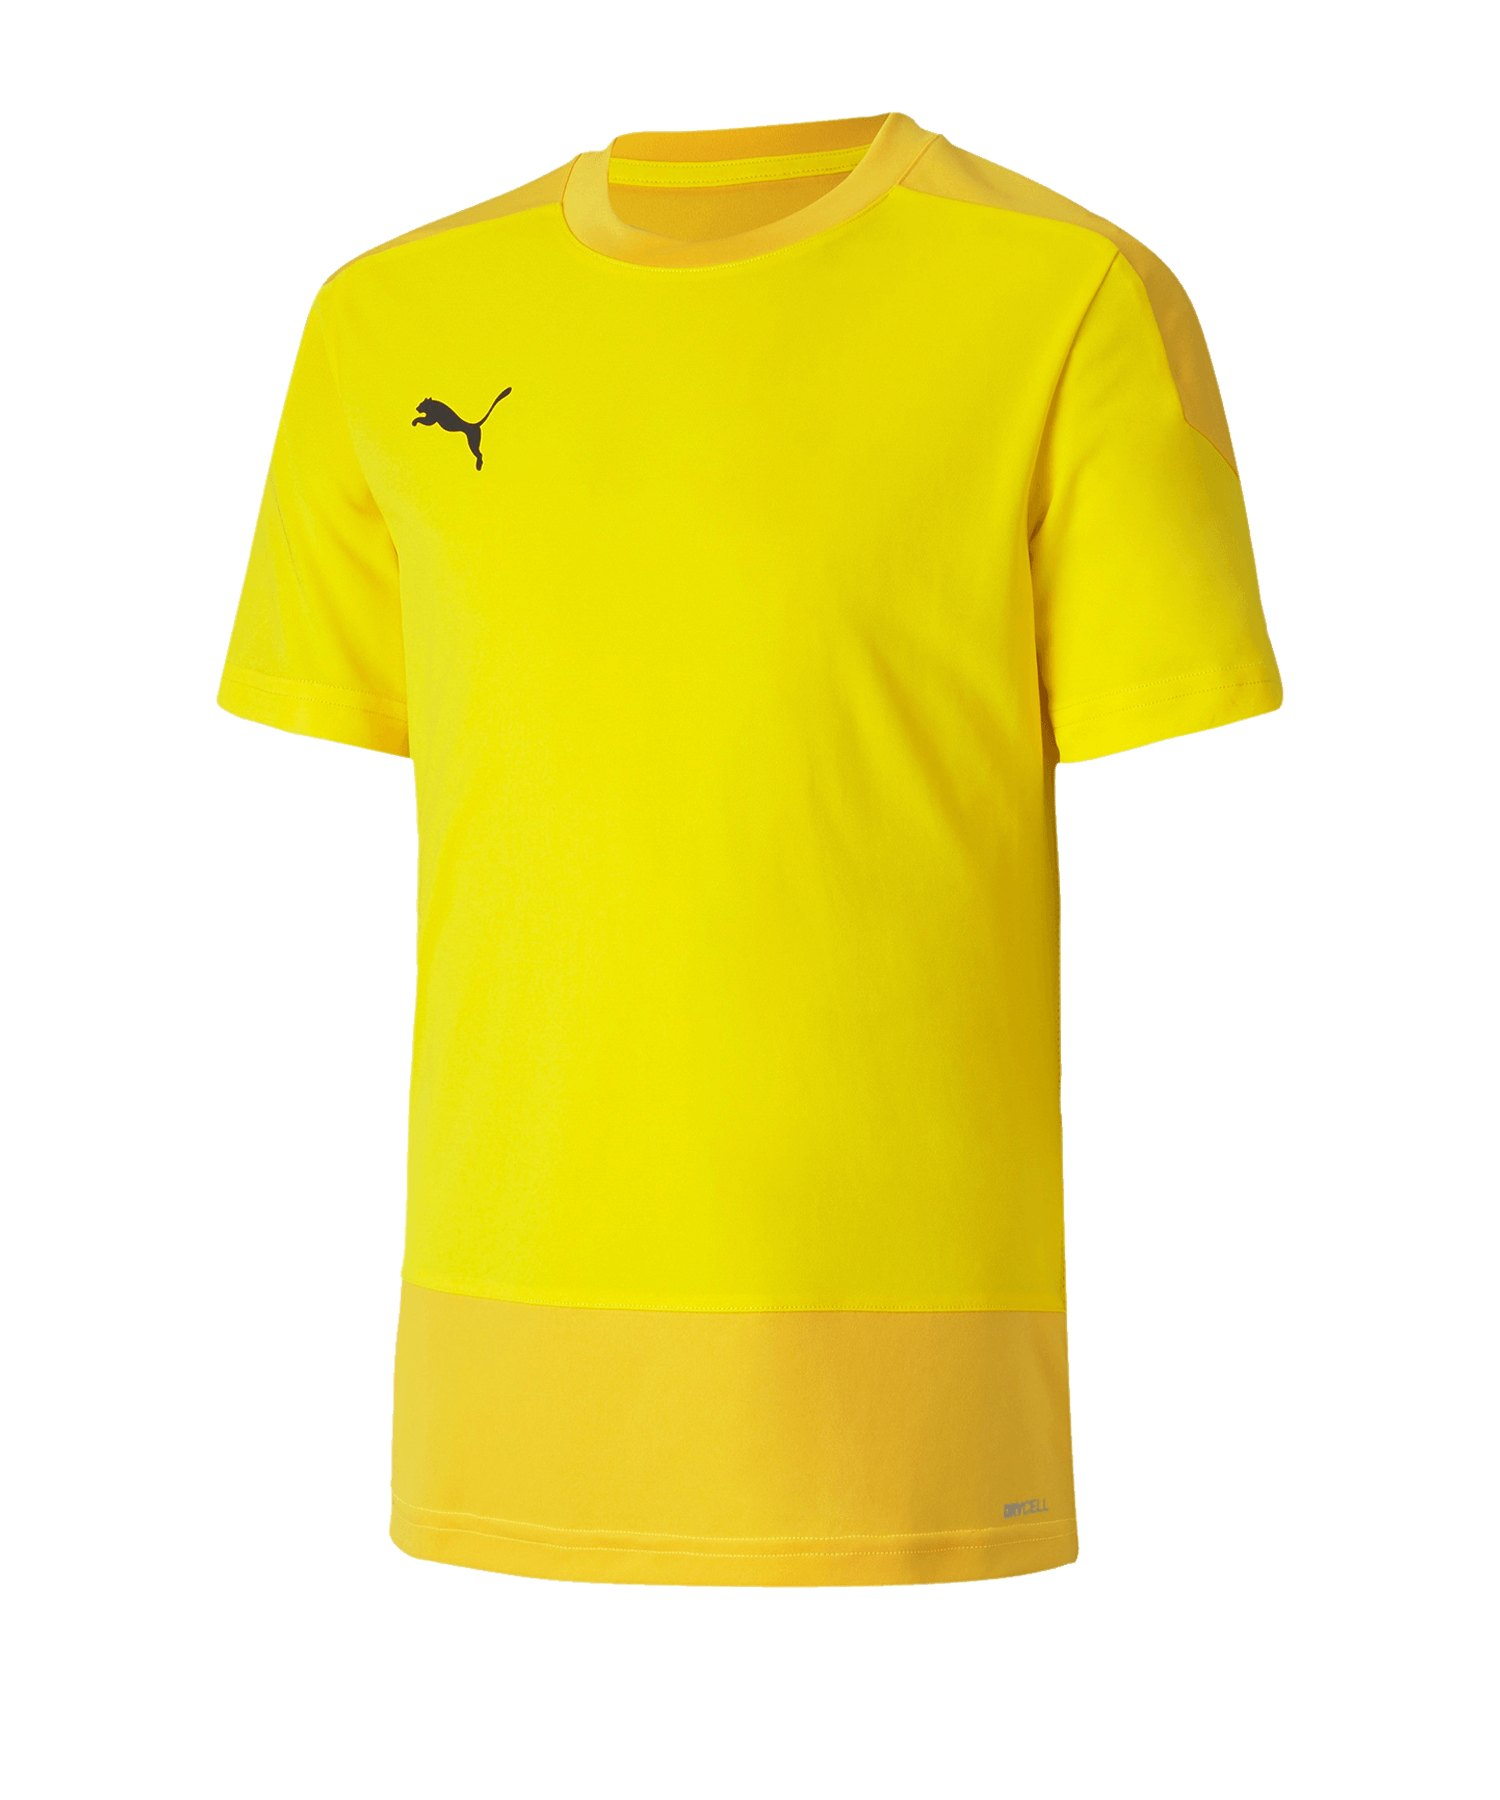 PUMA teamGOAL 23 Training Trikot Kids Gelb F07 - gelb